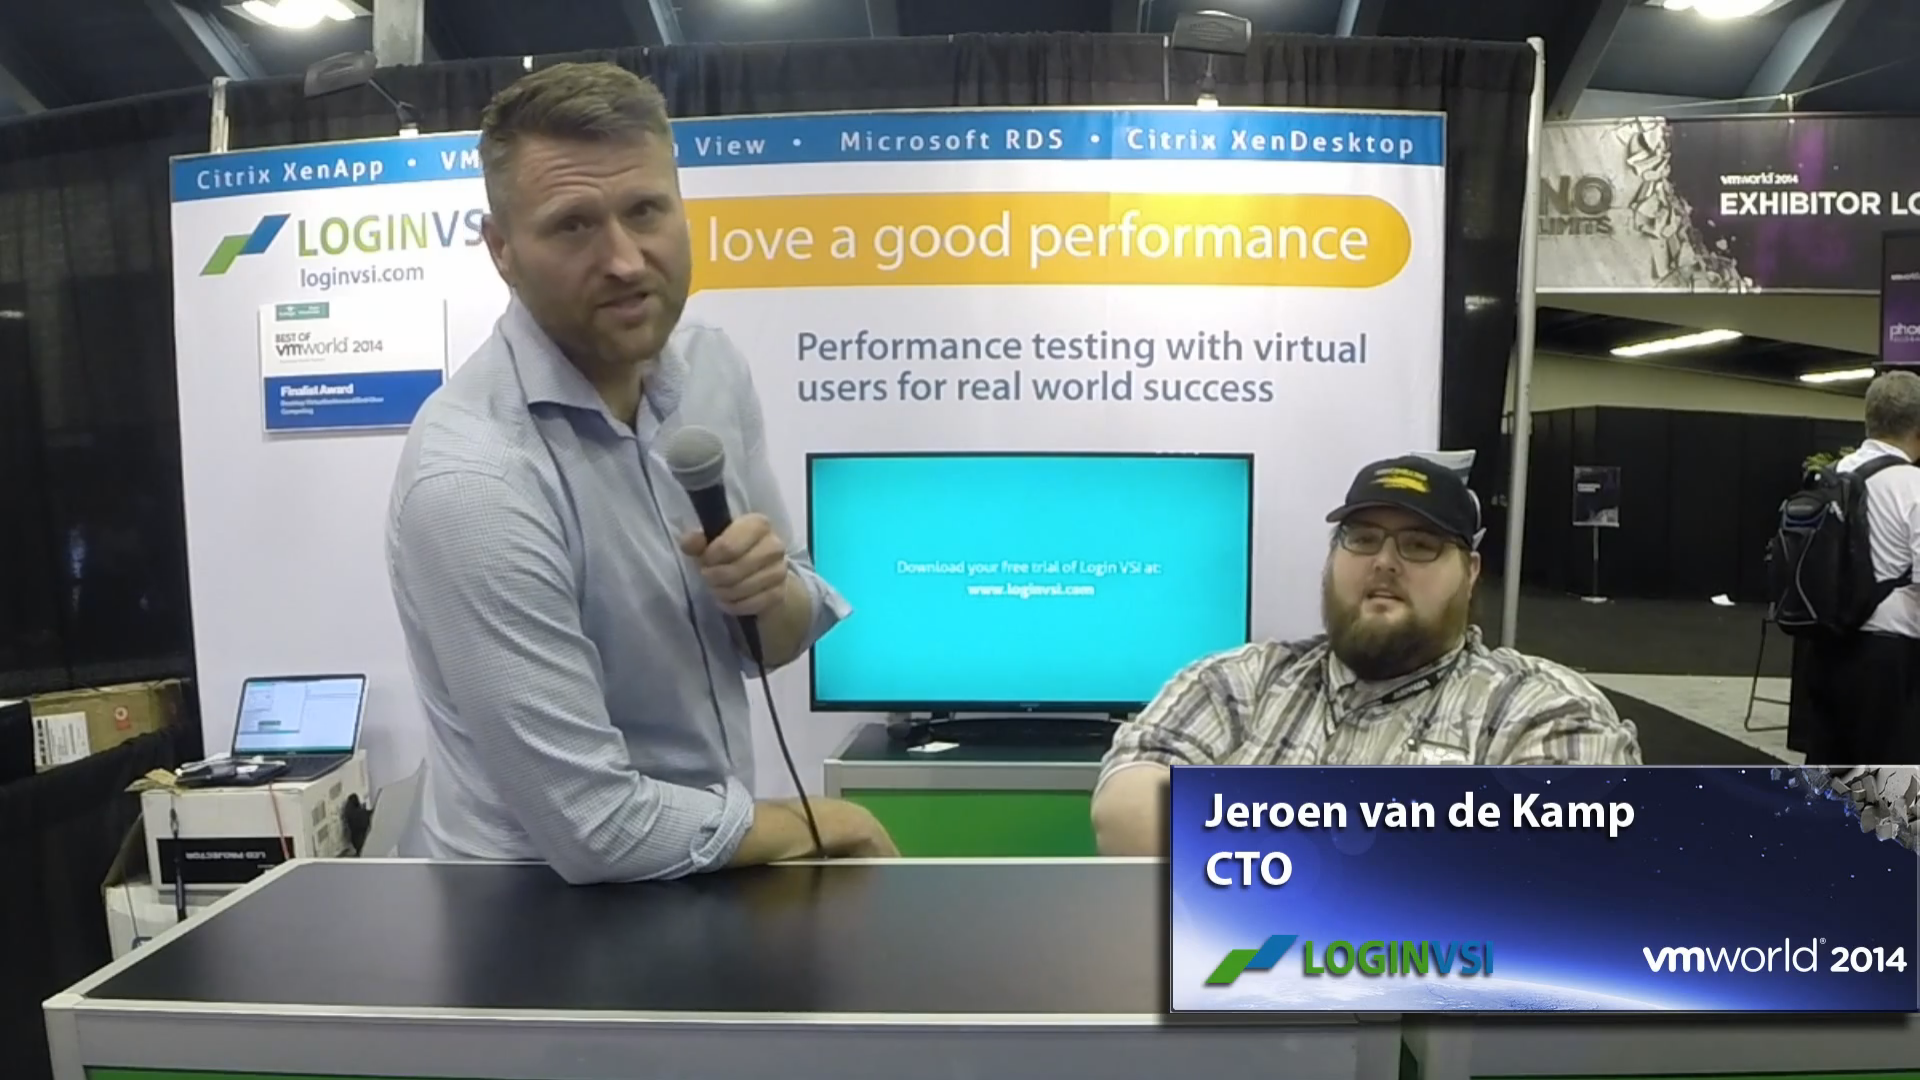 VMworld 2014 - Interview with LoginVSI's CTO Jeroen van de Kamp